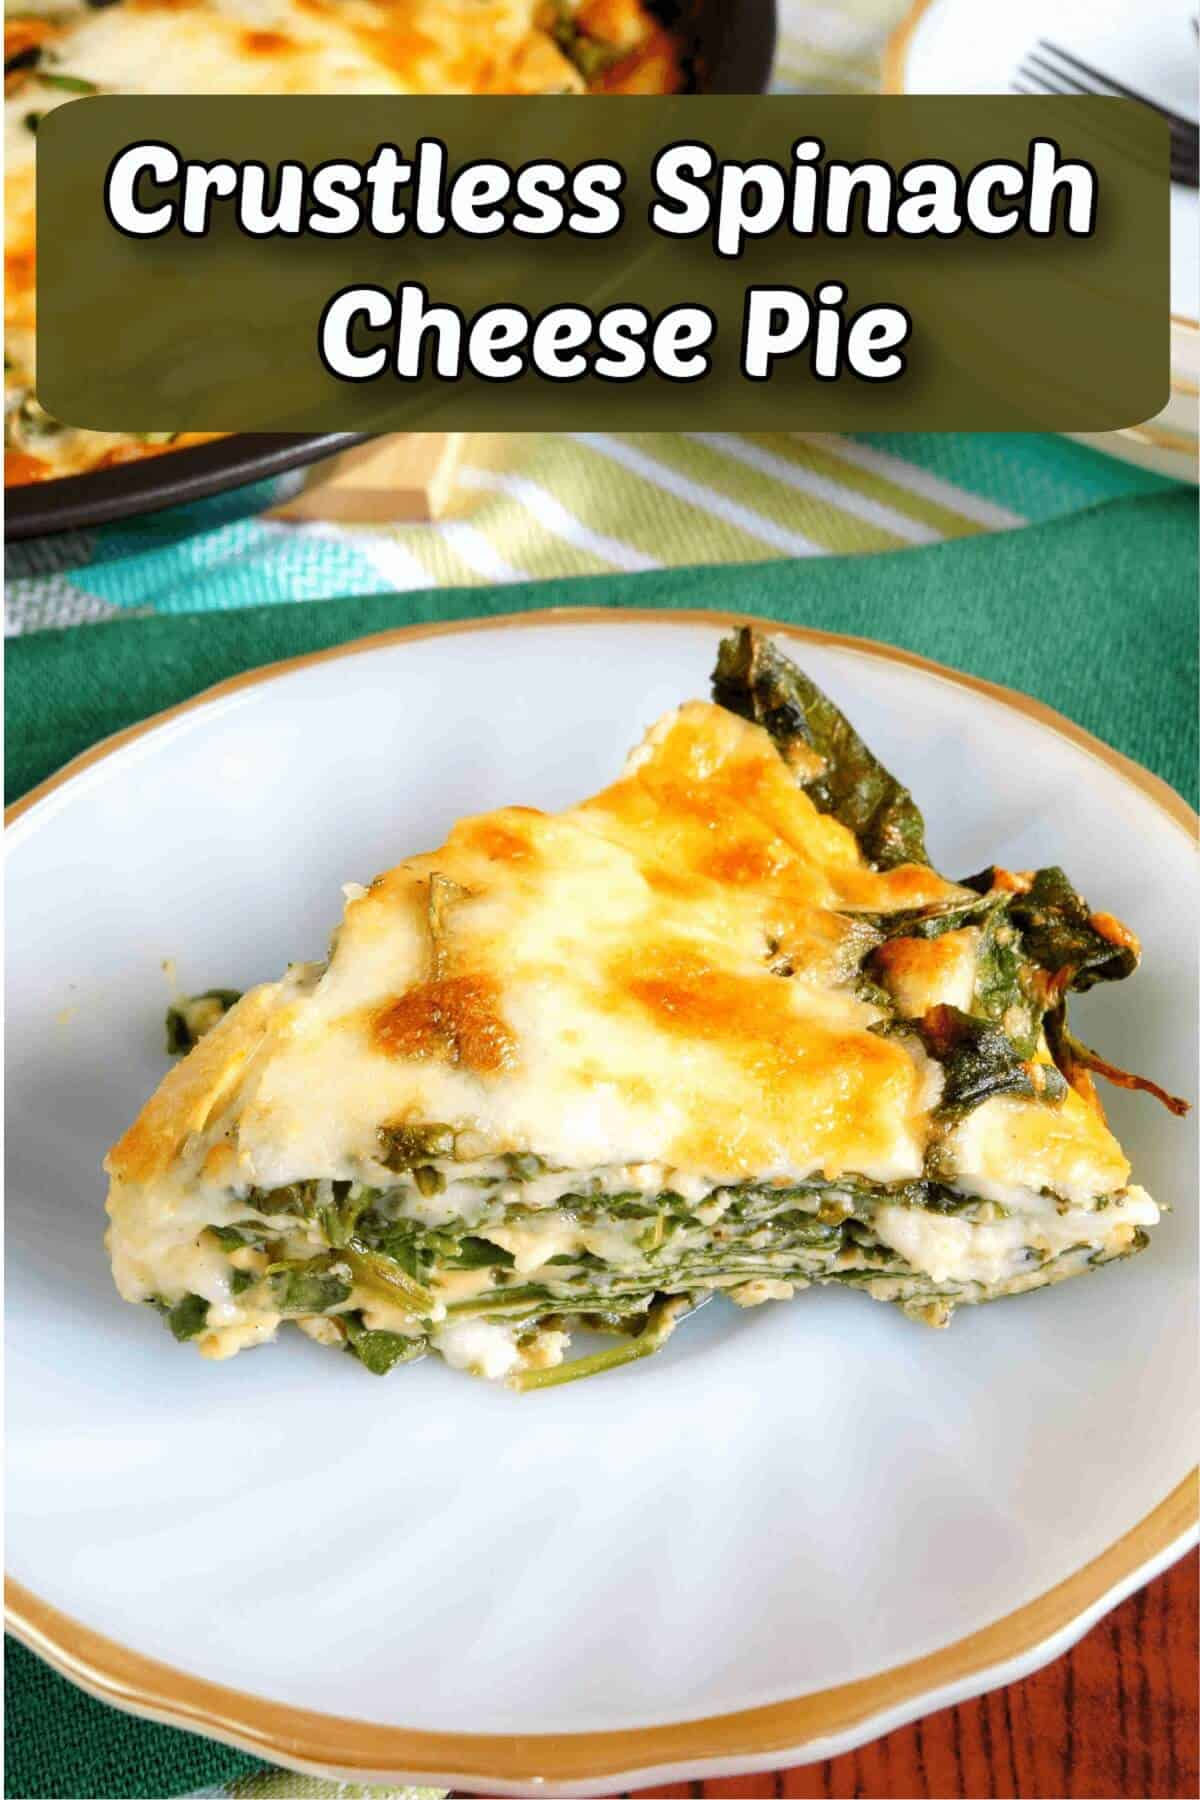 crustless spinach cheese pie recipe cover image